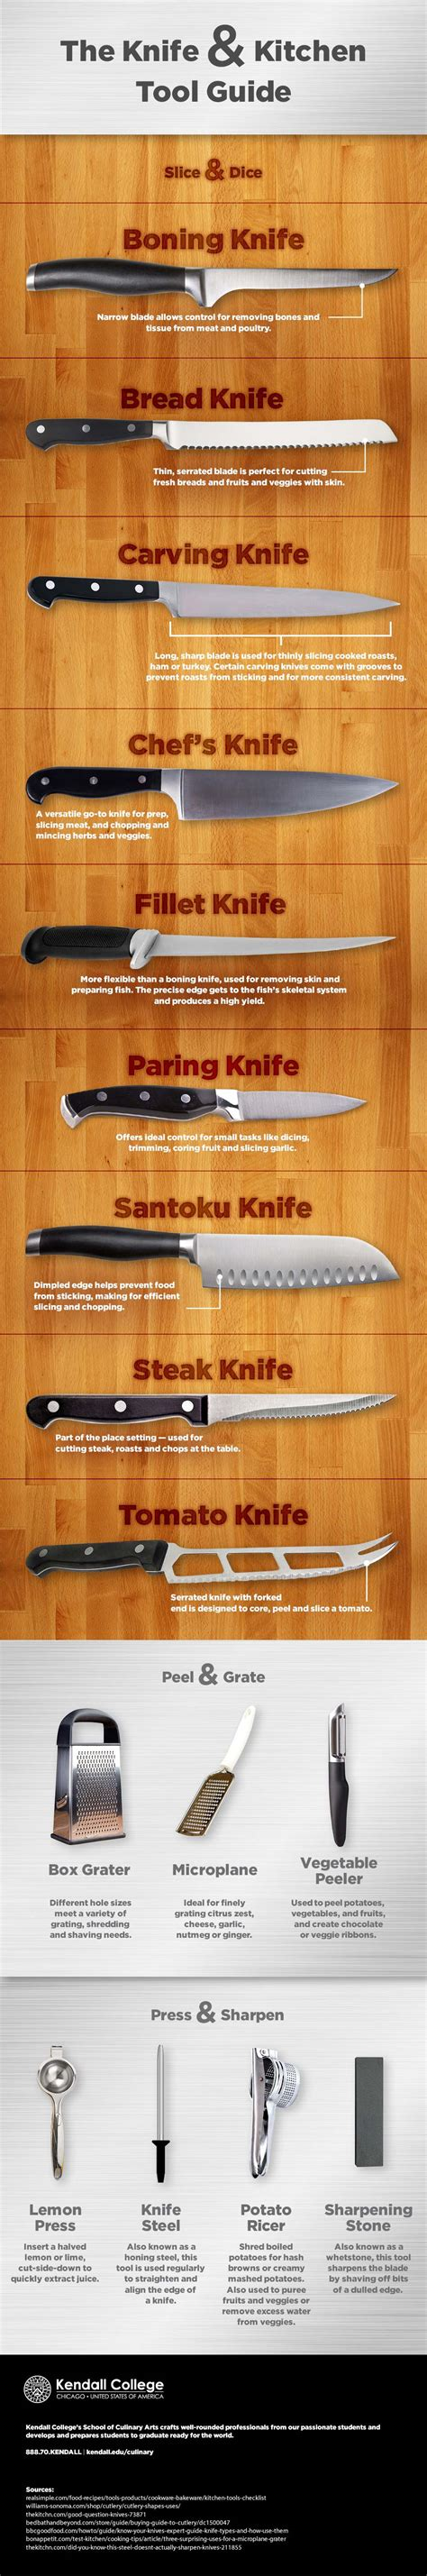 kitchen knives guide the knife kitchen tool guide infographic